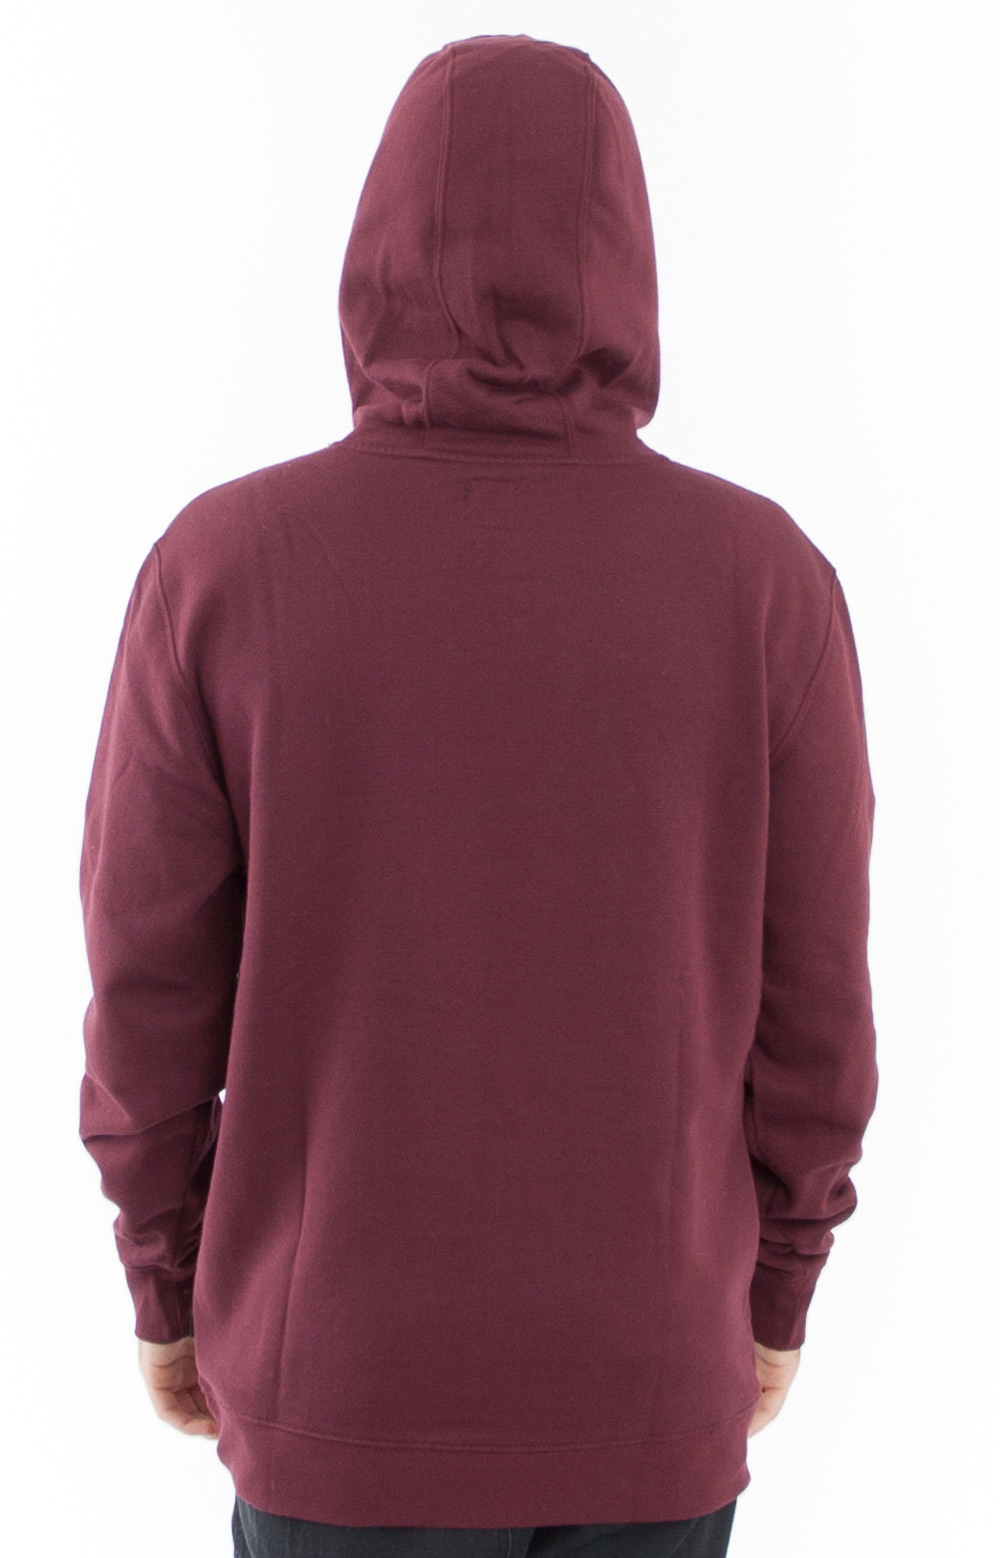 Vans Classic Pullover Hoodie - Port Royale/White 3